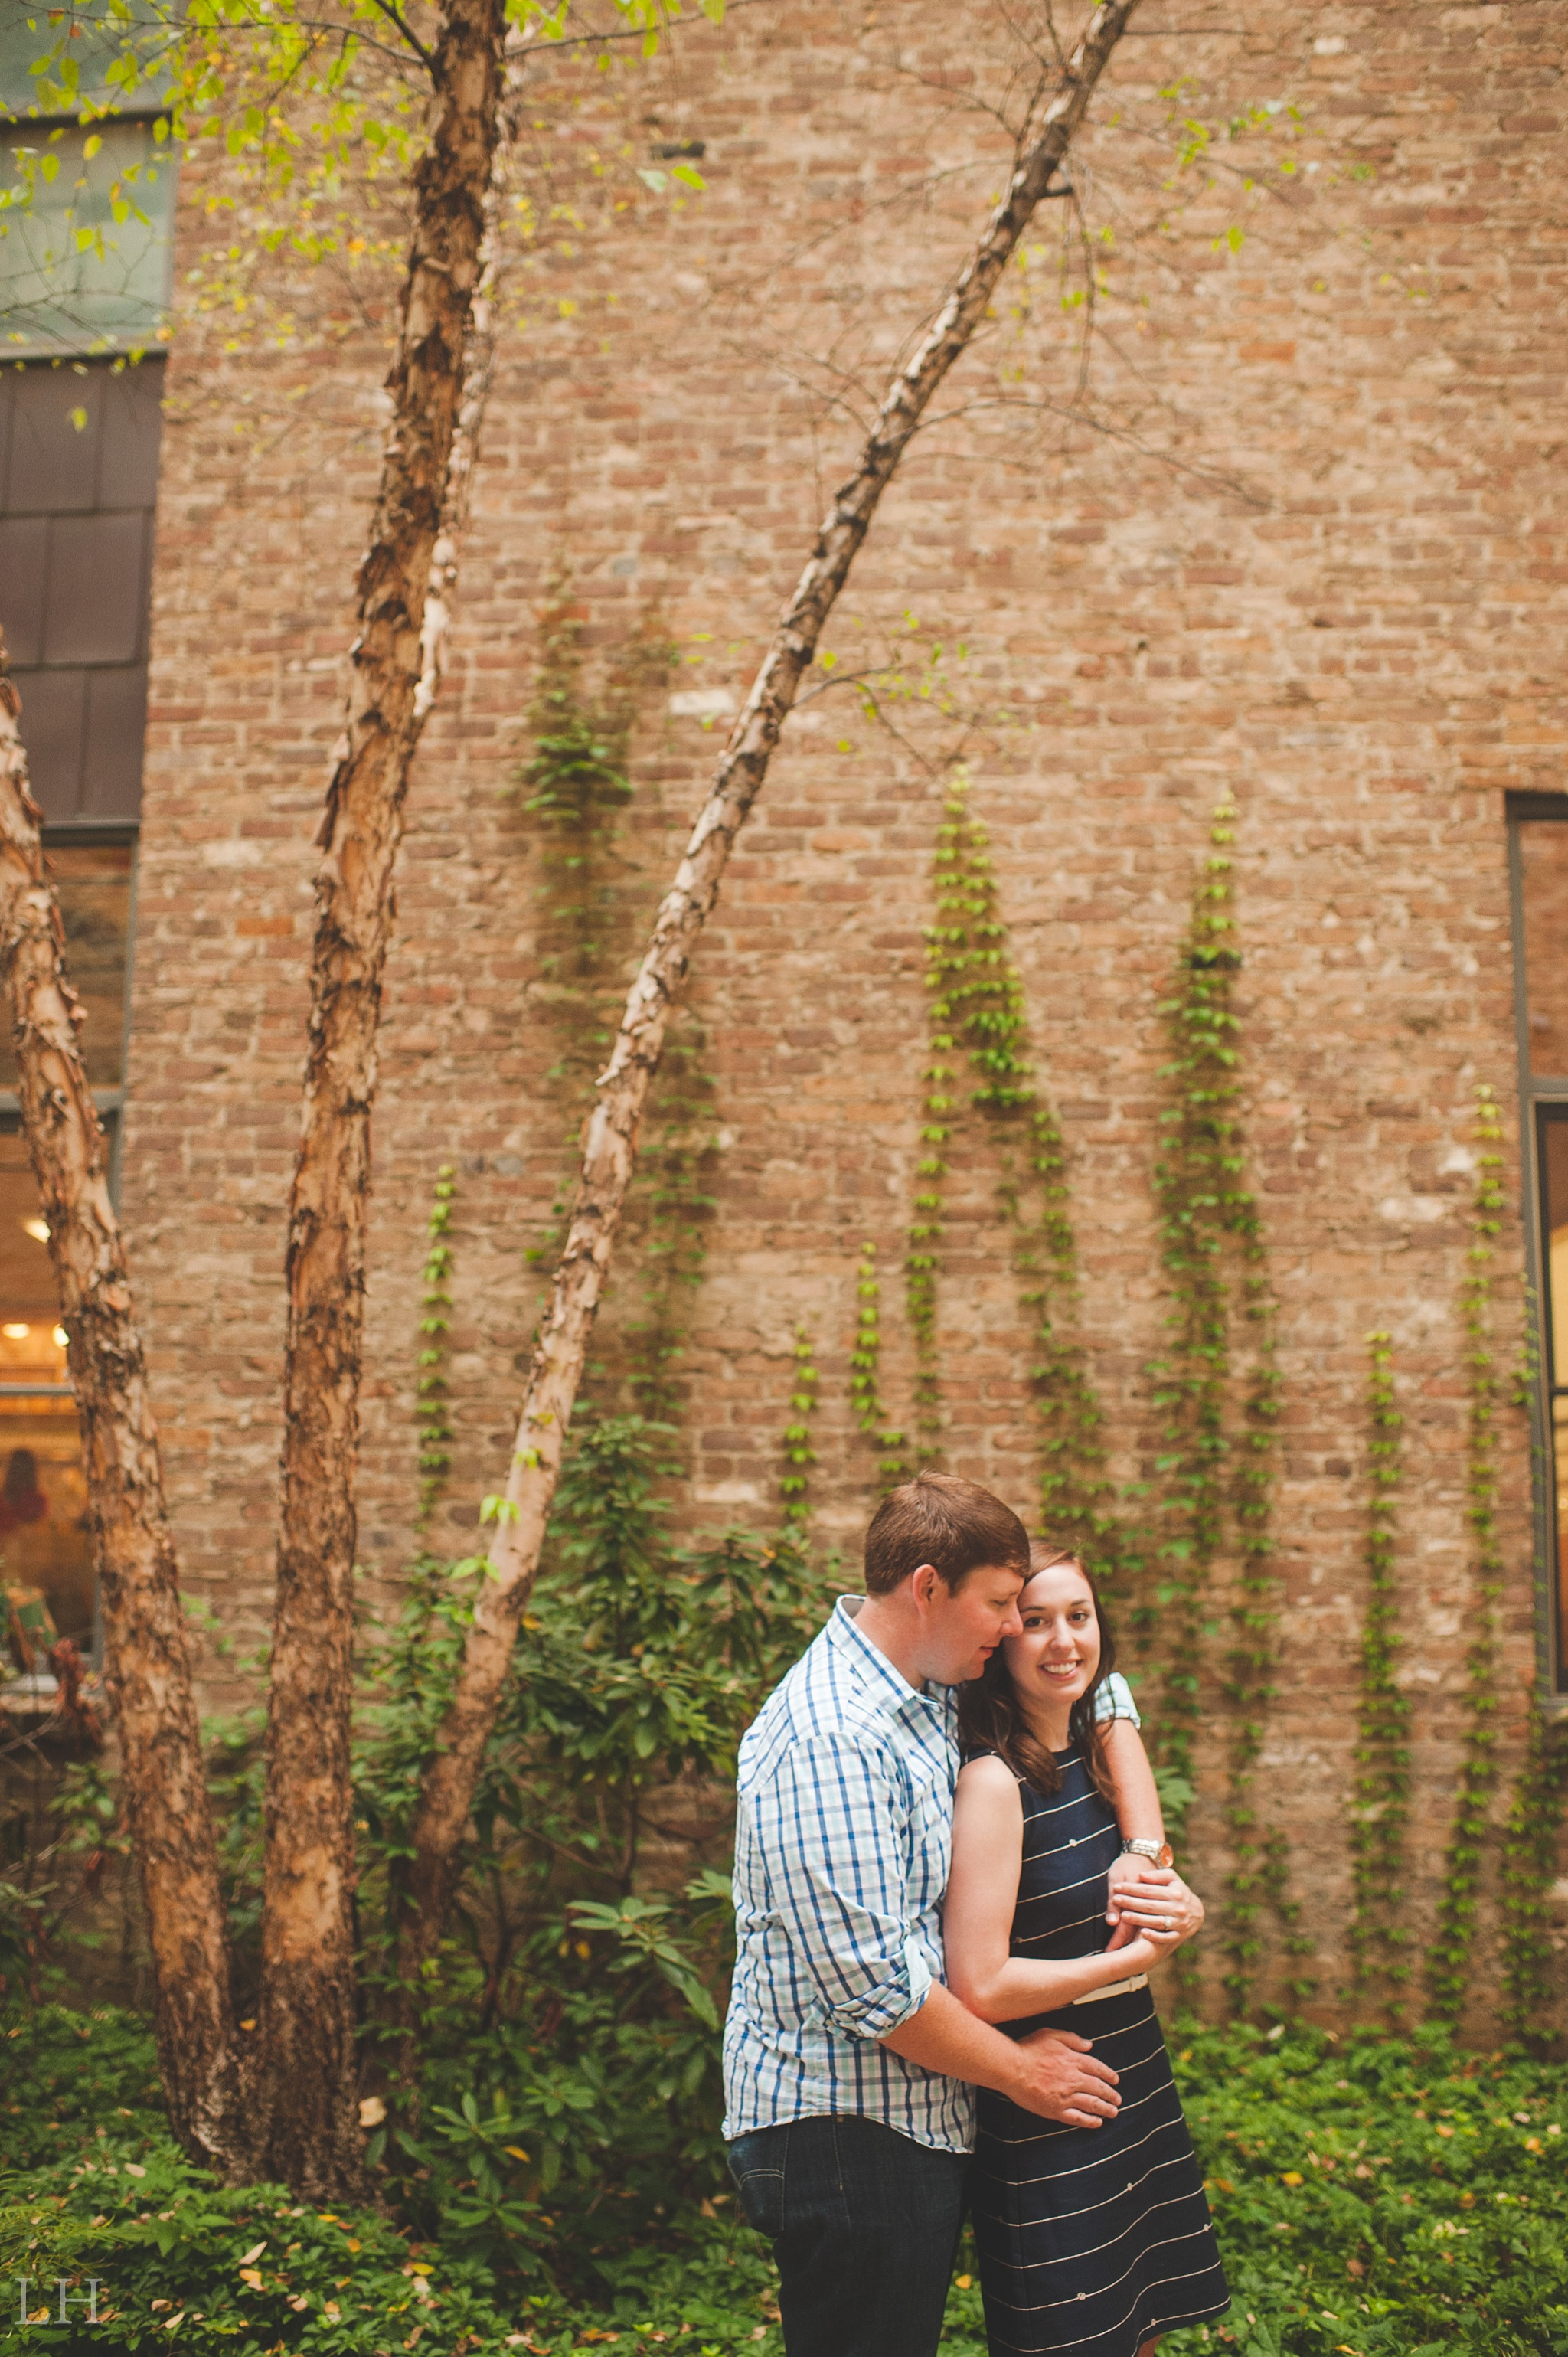 DowntownKnoxvilleEngagementSession122.jpg